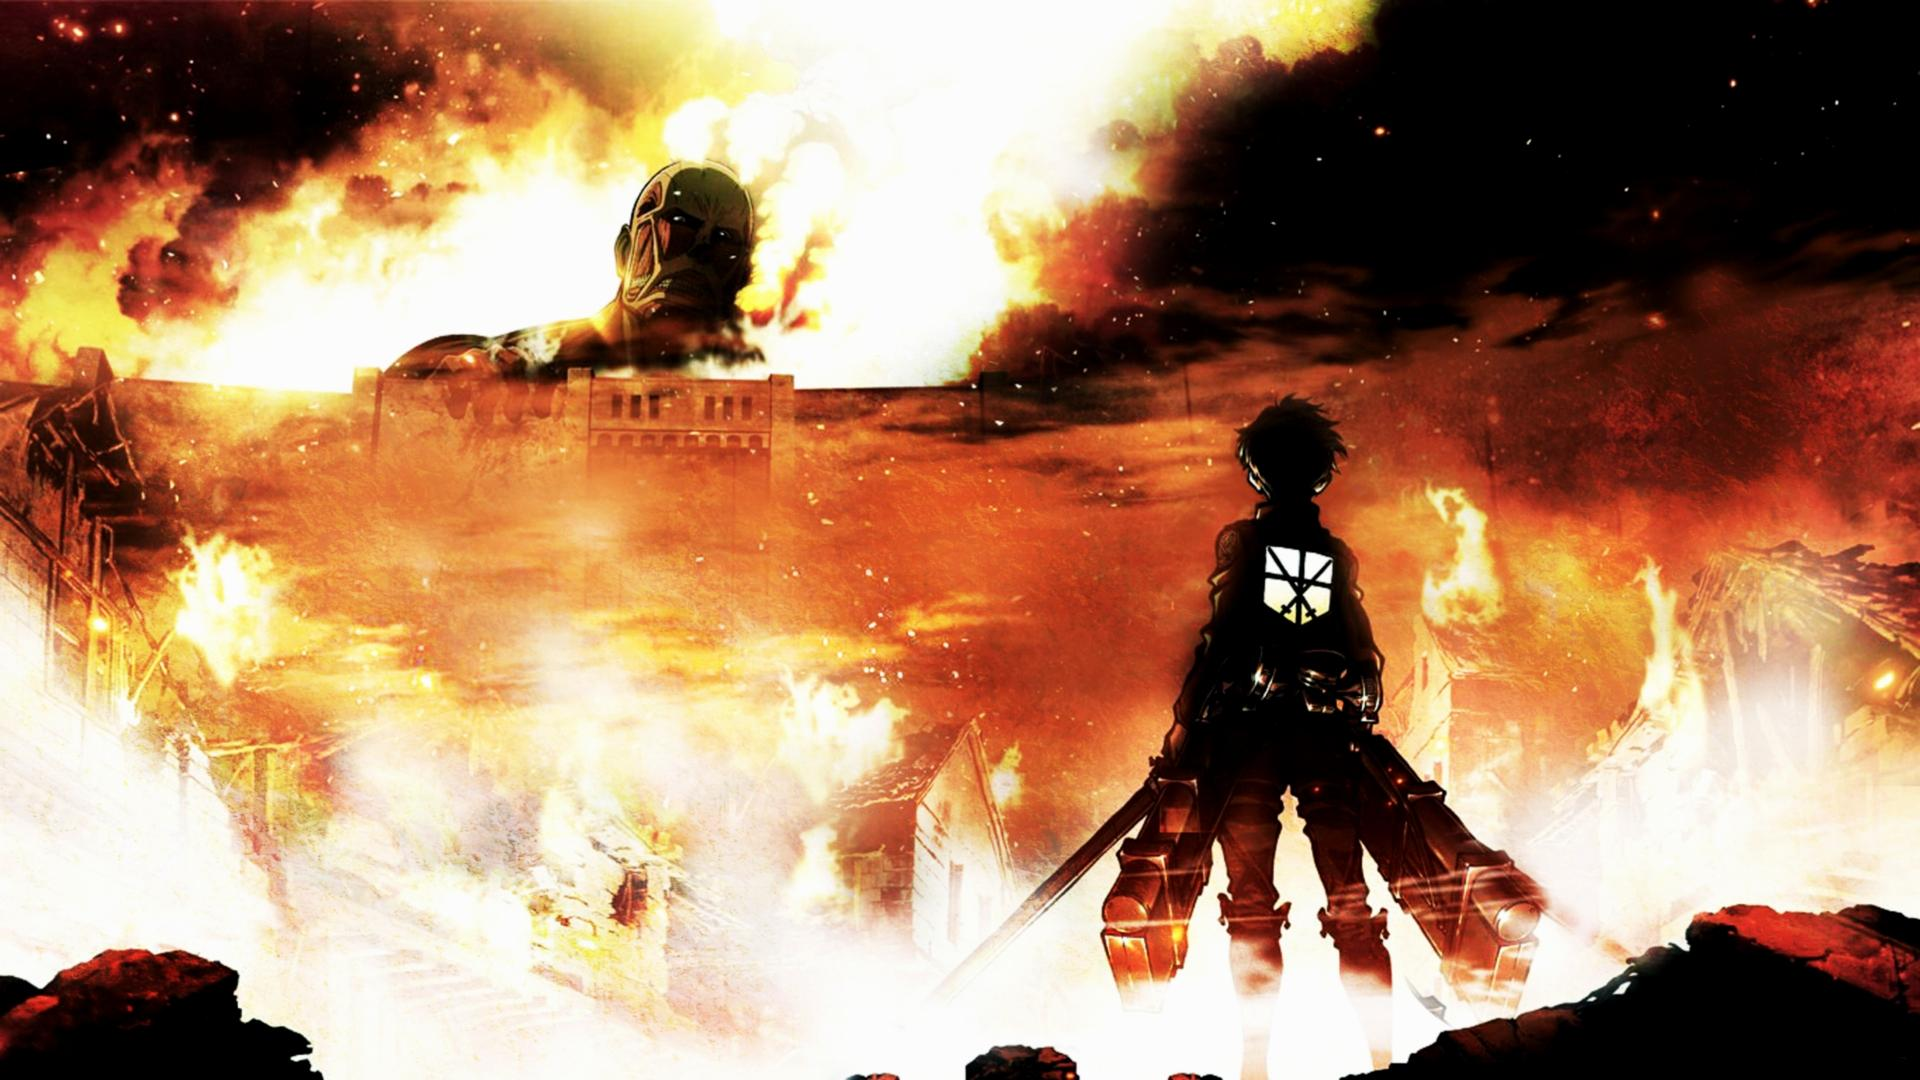 Attack On Titan Live Wallpaper Android Attack On Titan 22171 Hd Wallpaper Backgrounds Download